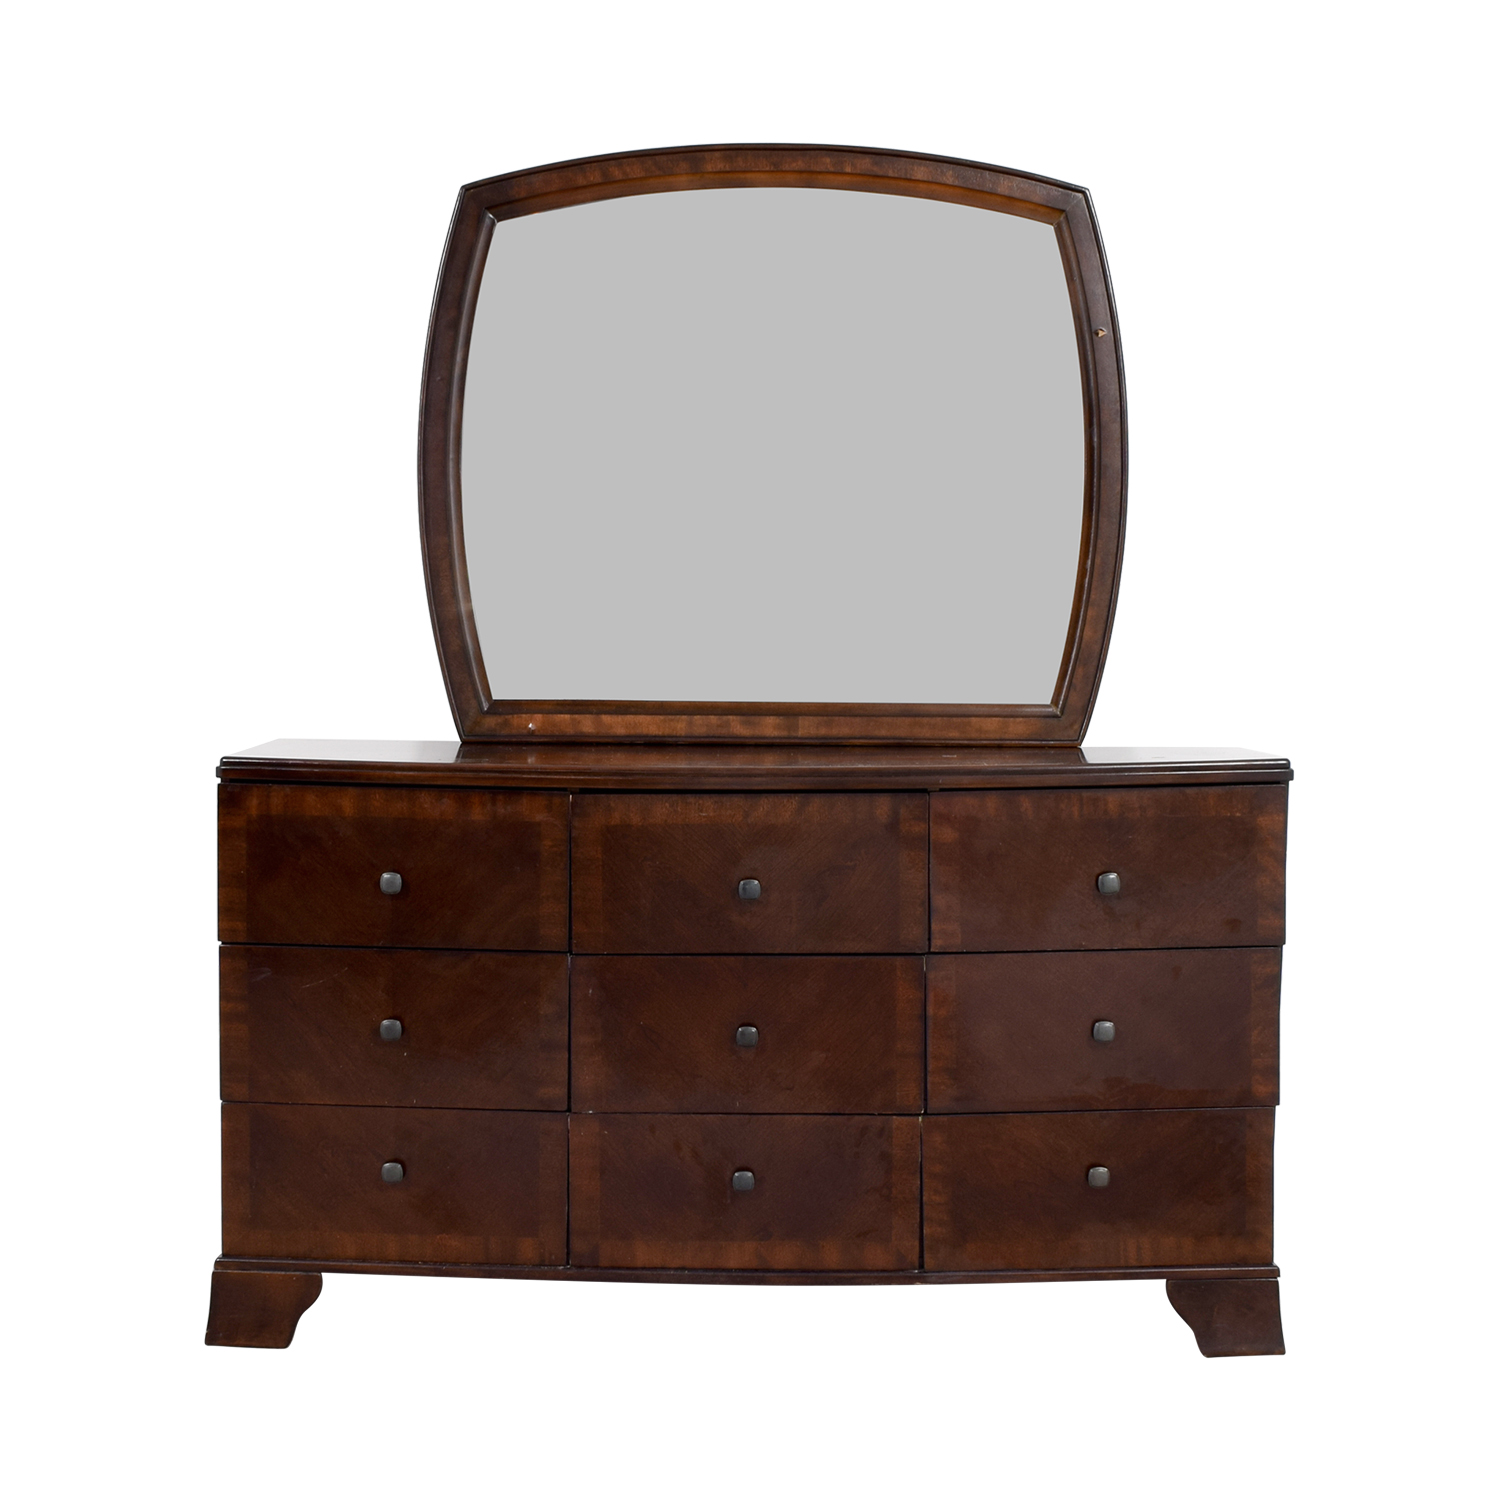 Ashley Furniture Six-Drawer Dresser with Mirror sale